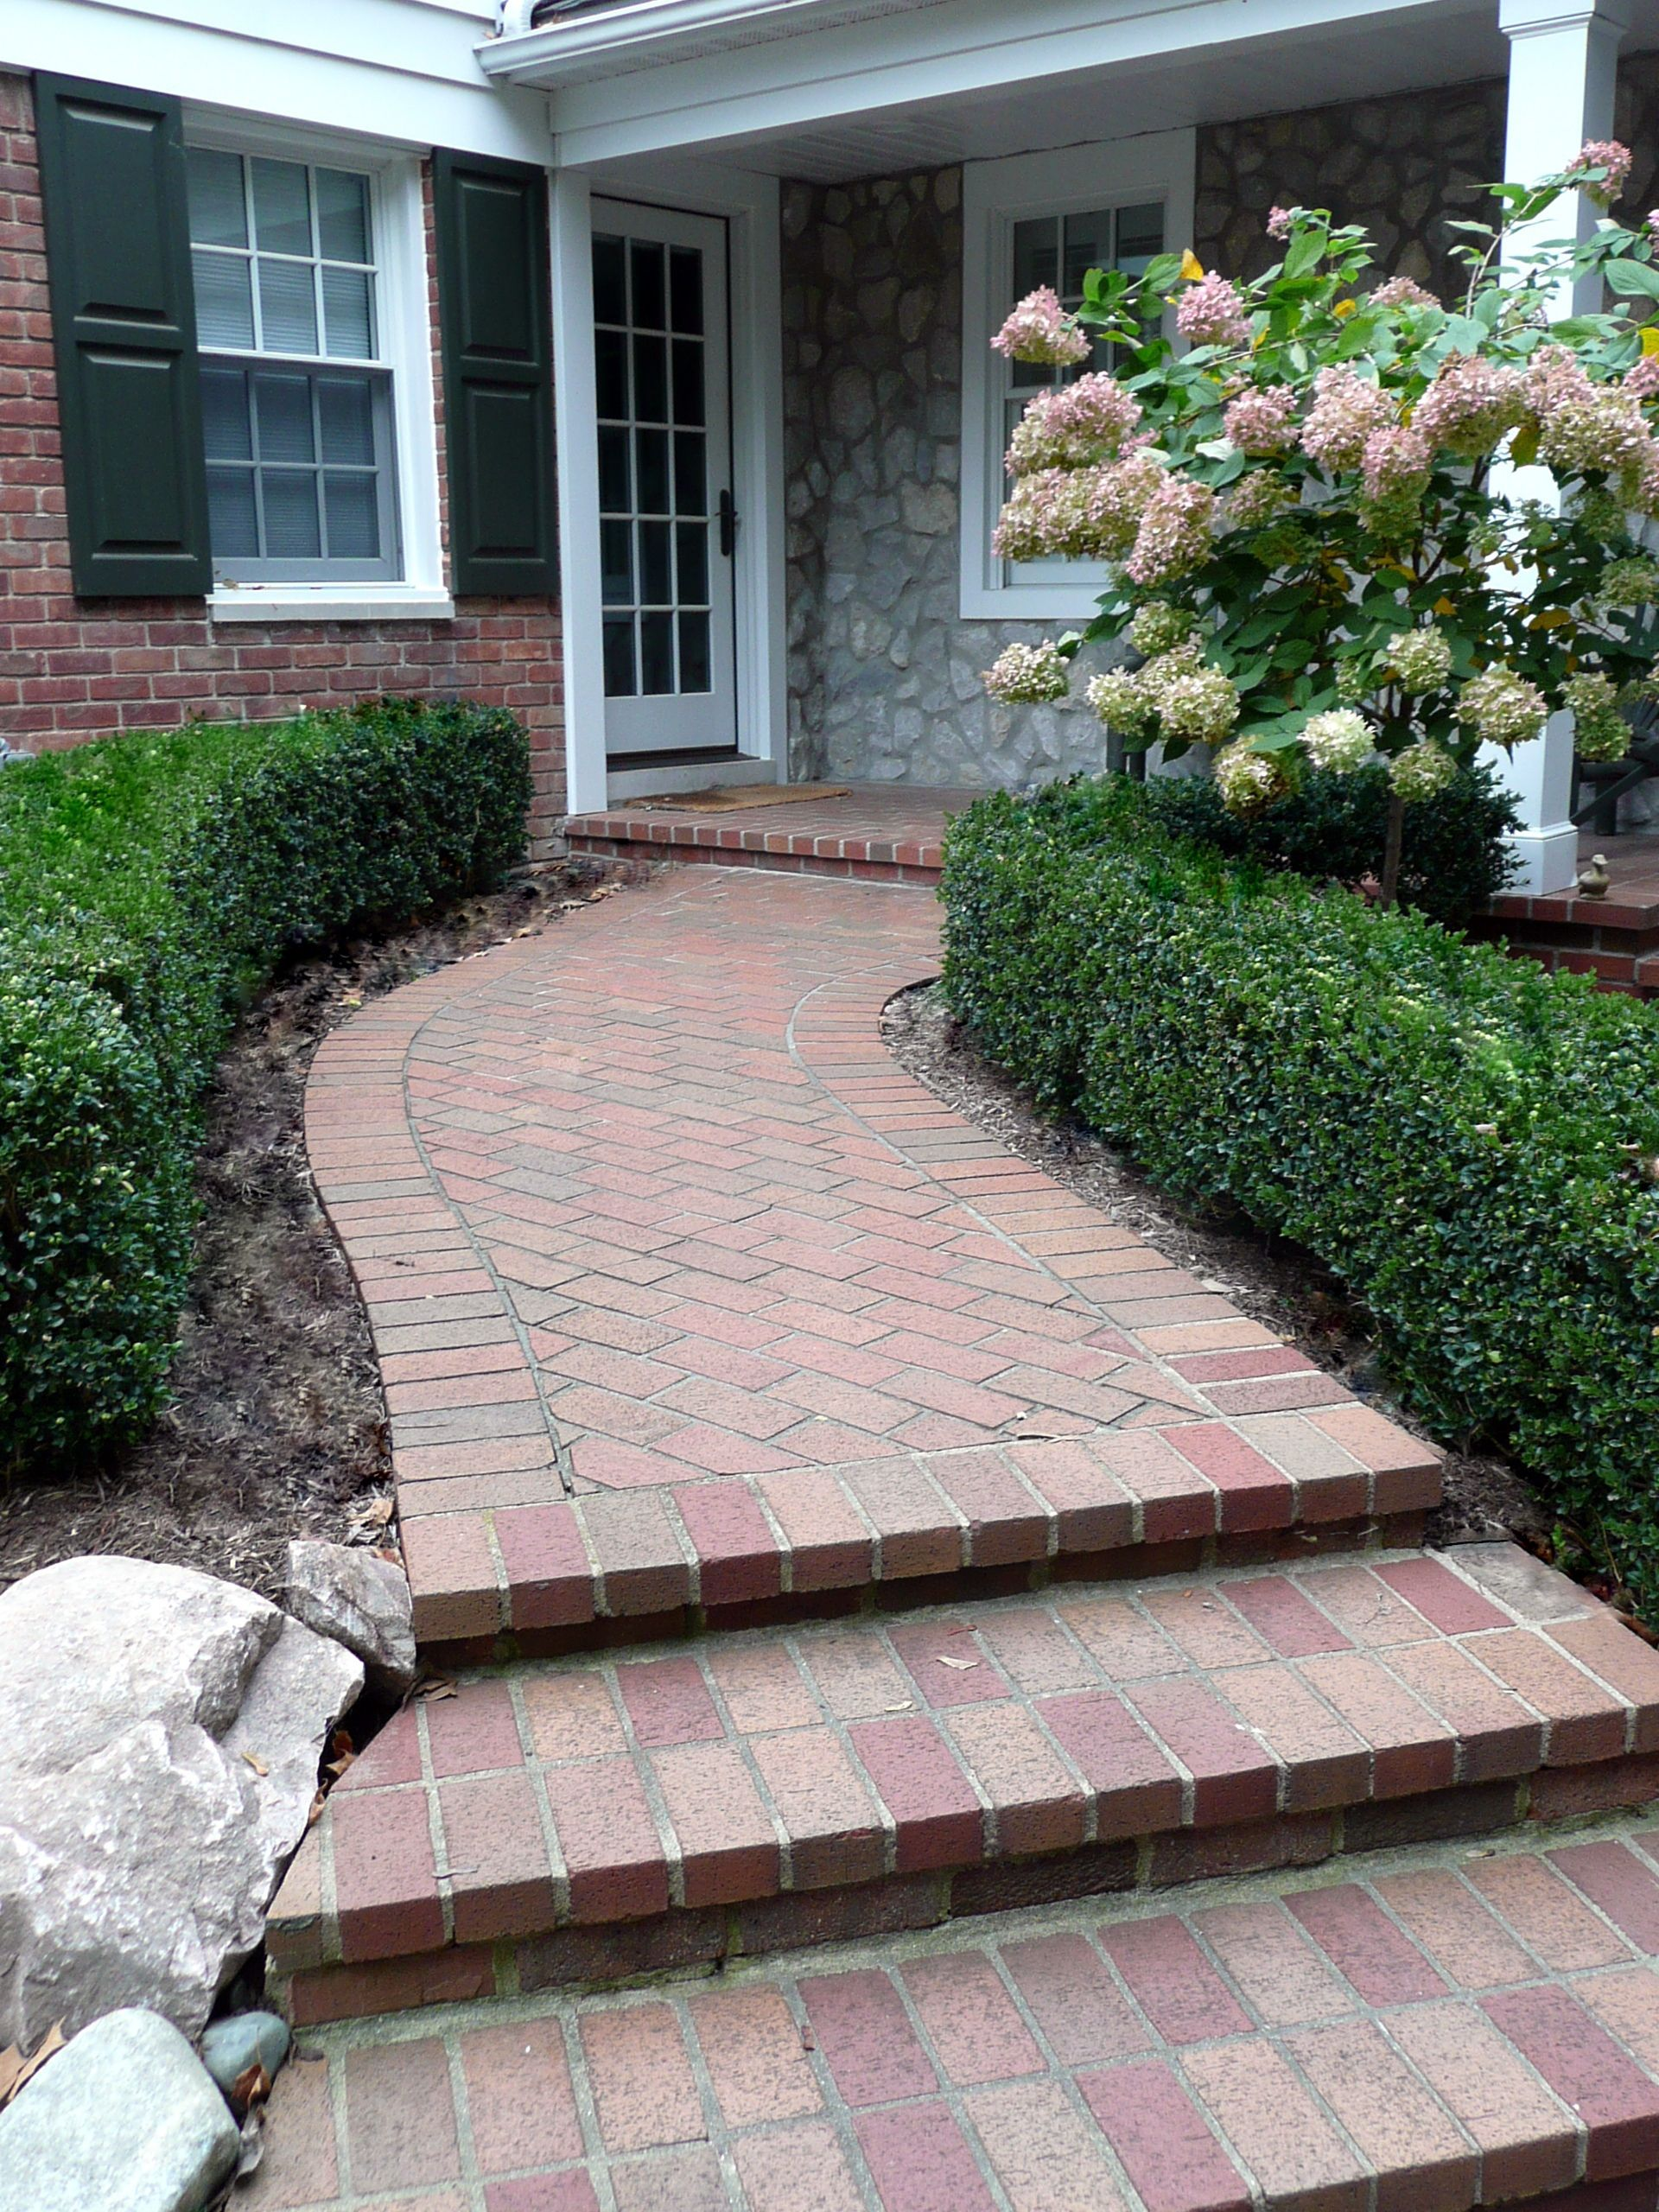 Decorative Brick Pavers brick paver front porch and walkway. | porches and walks